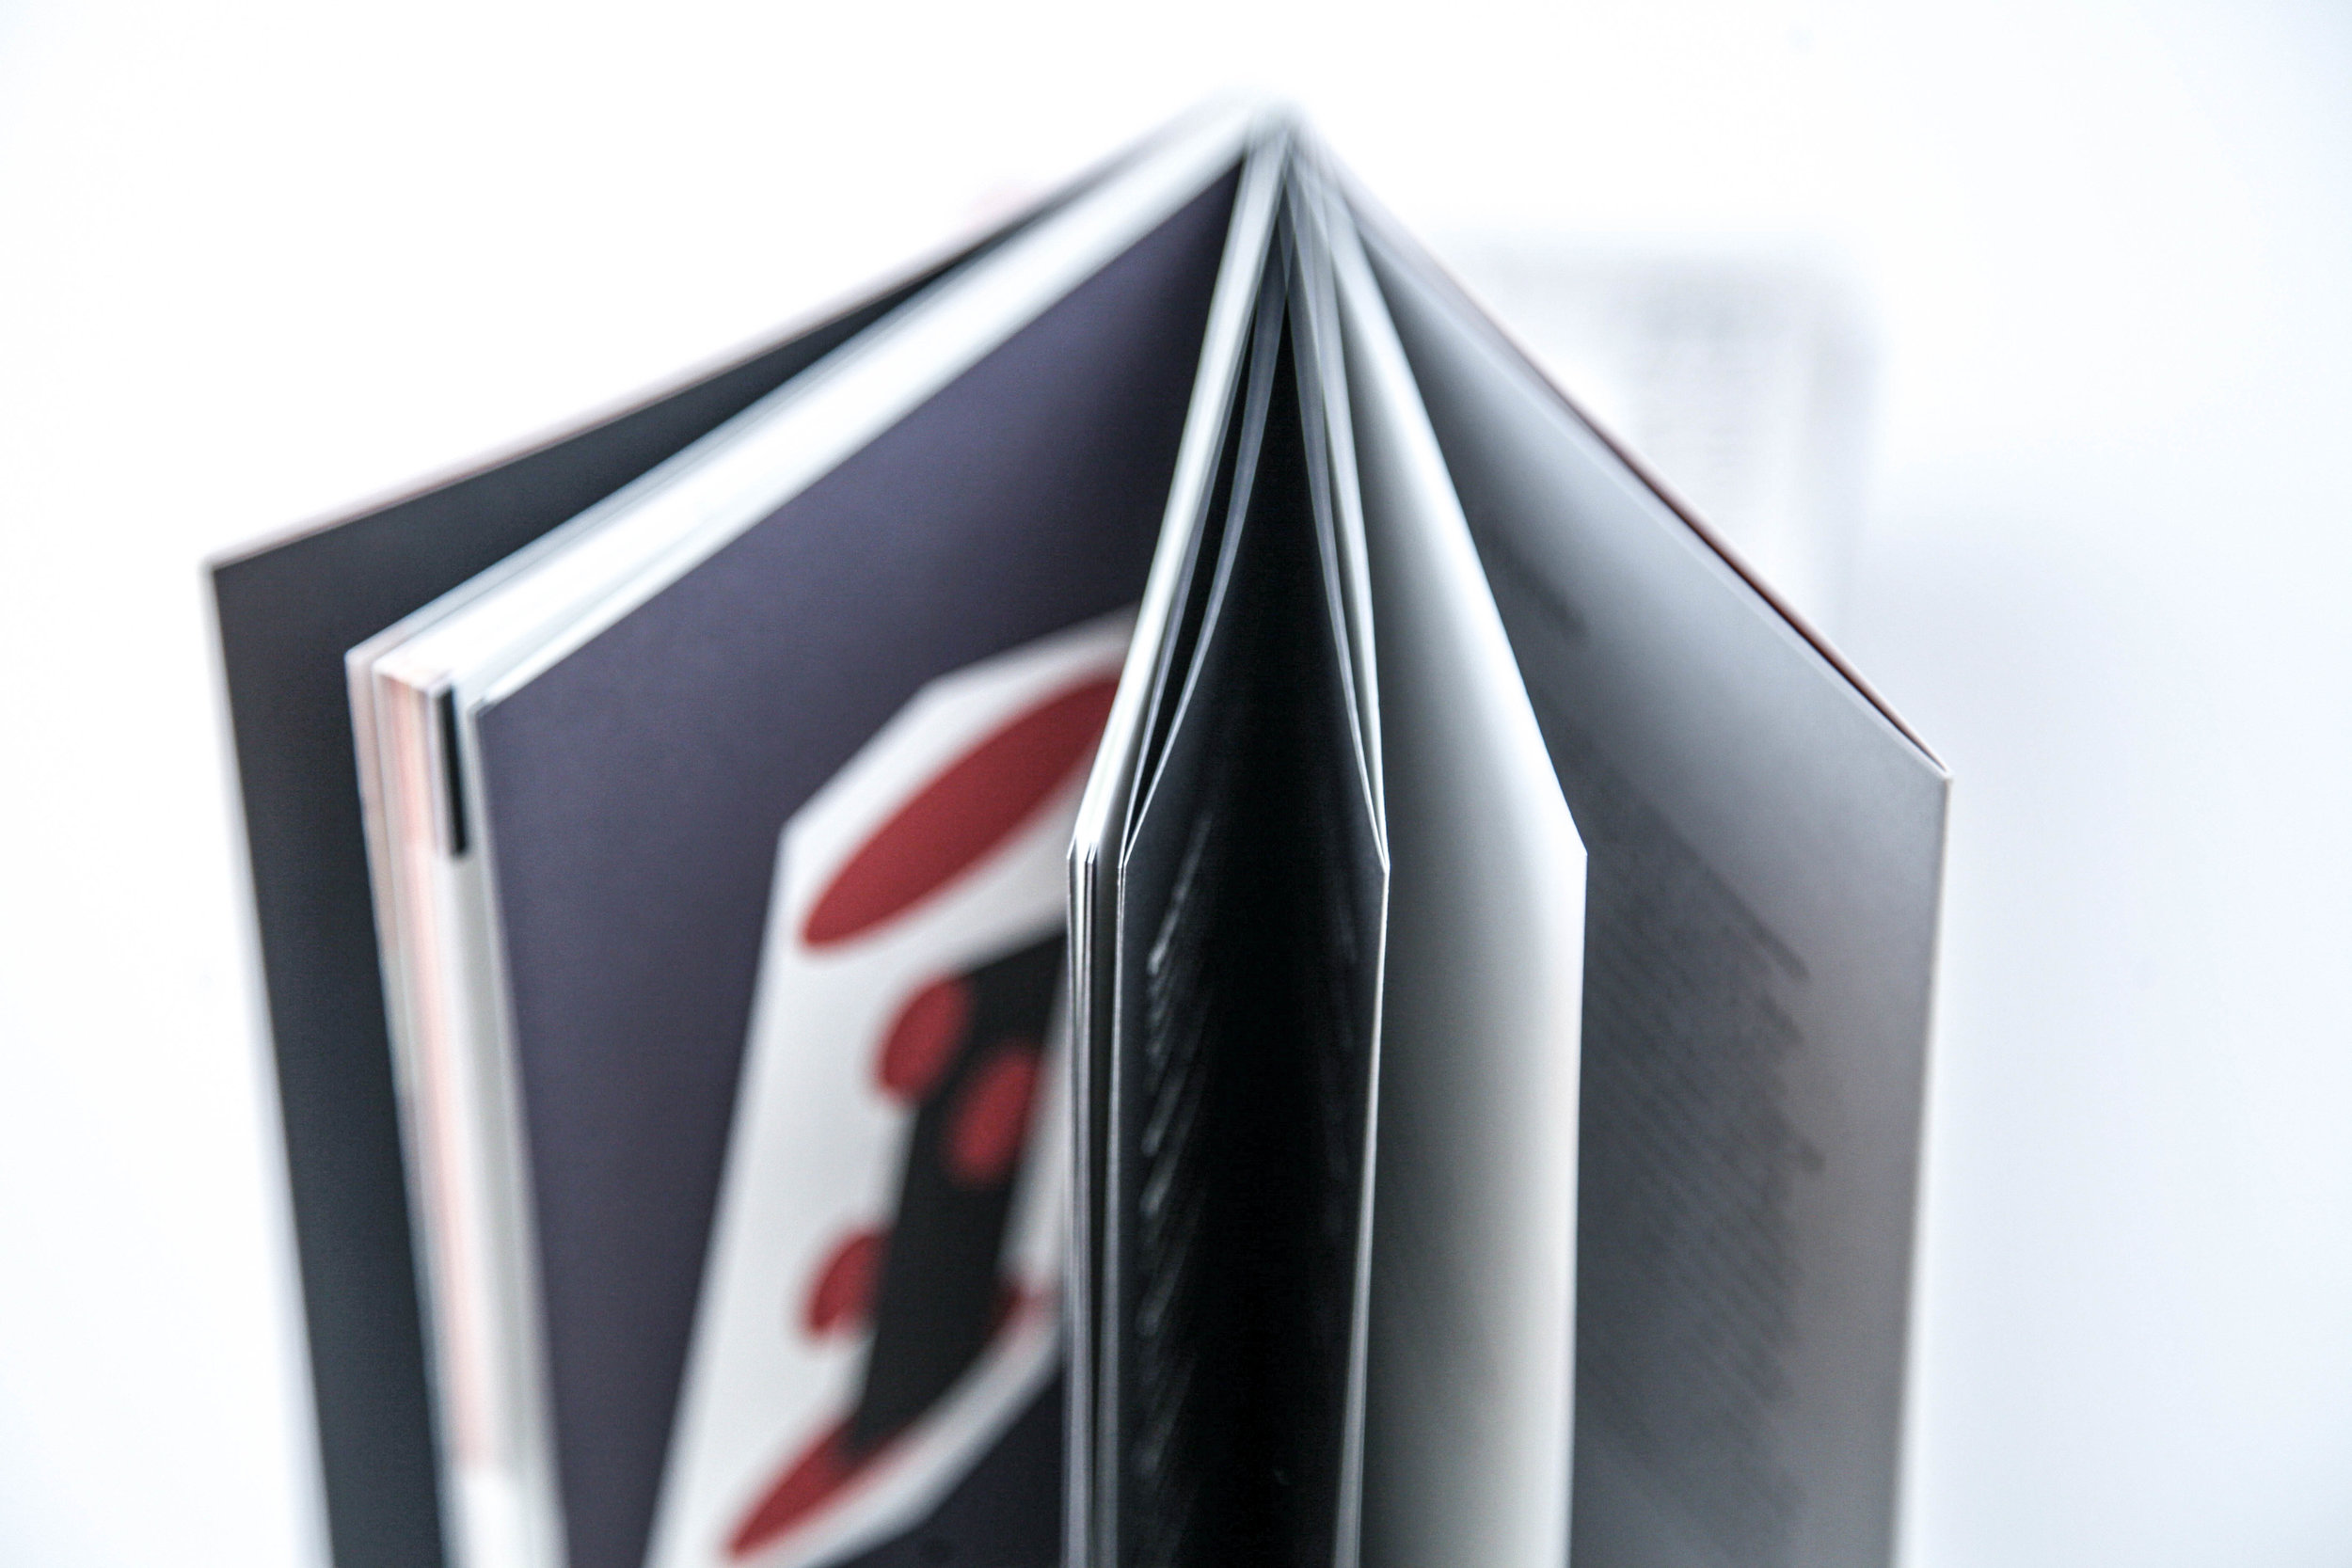 The pages of the magize slightly open